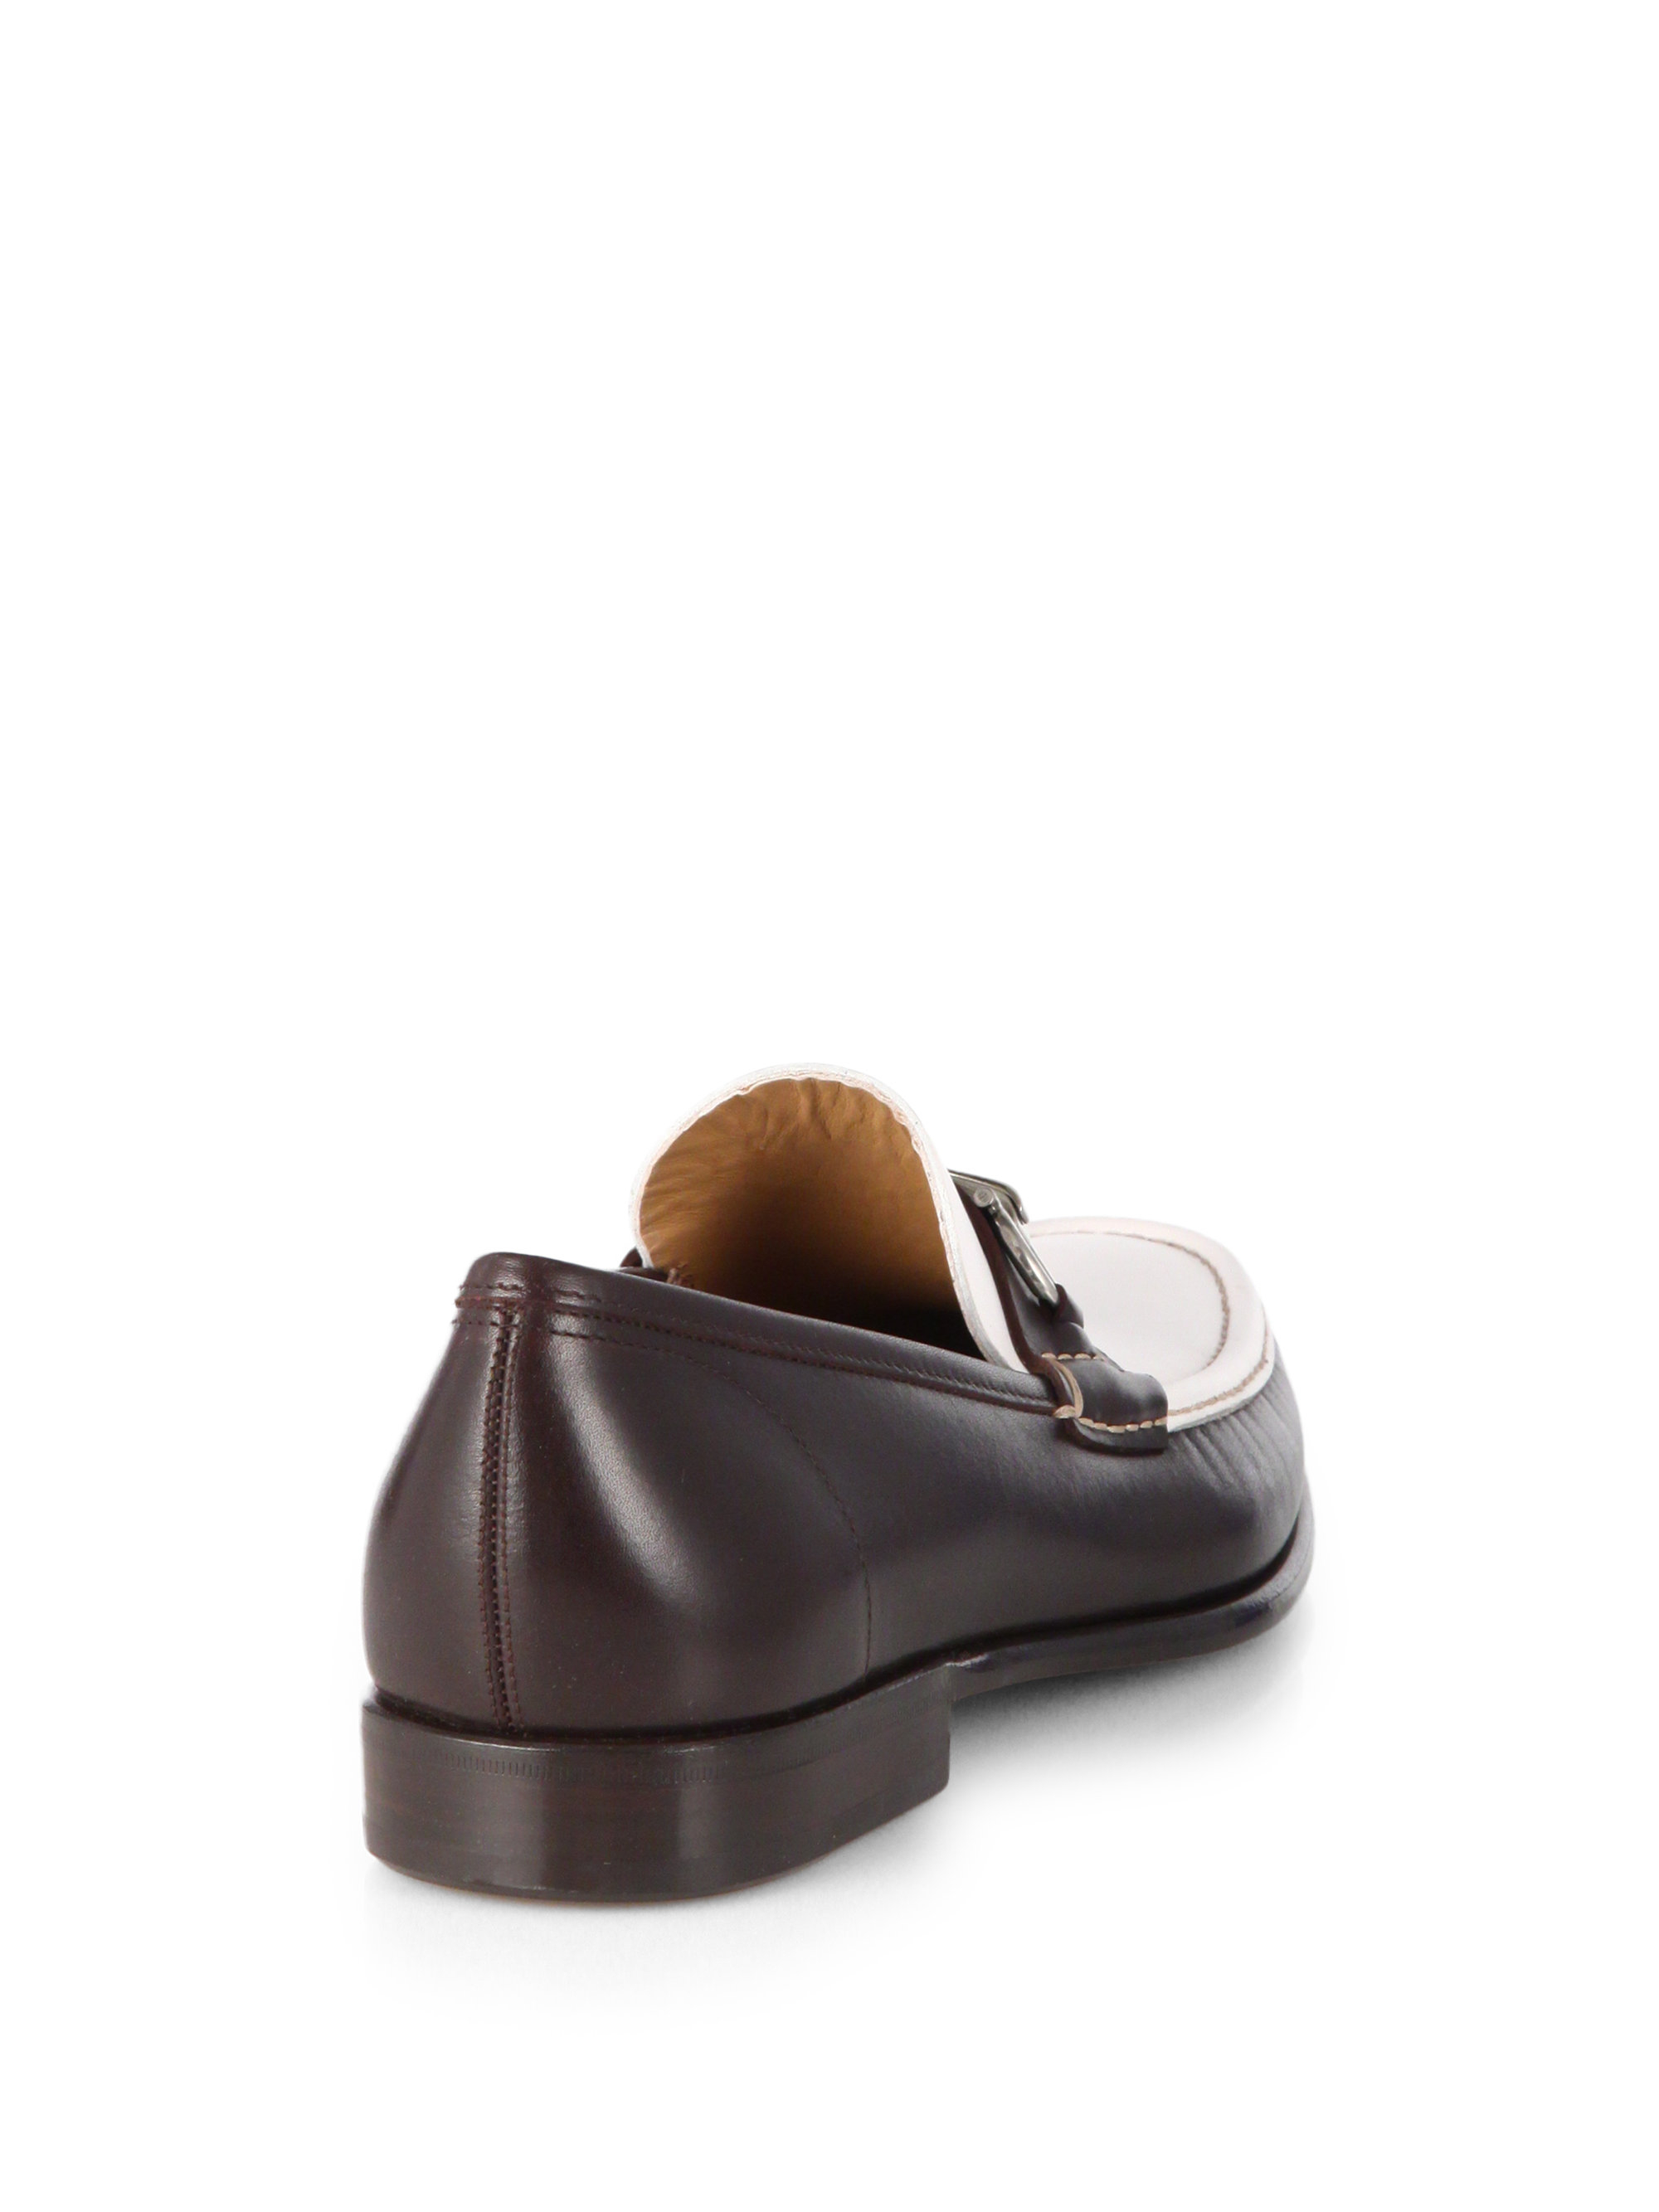 Ferragamo Raffaele Slip-on Bit Loafers in Brown for Men | Lyst